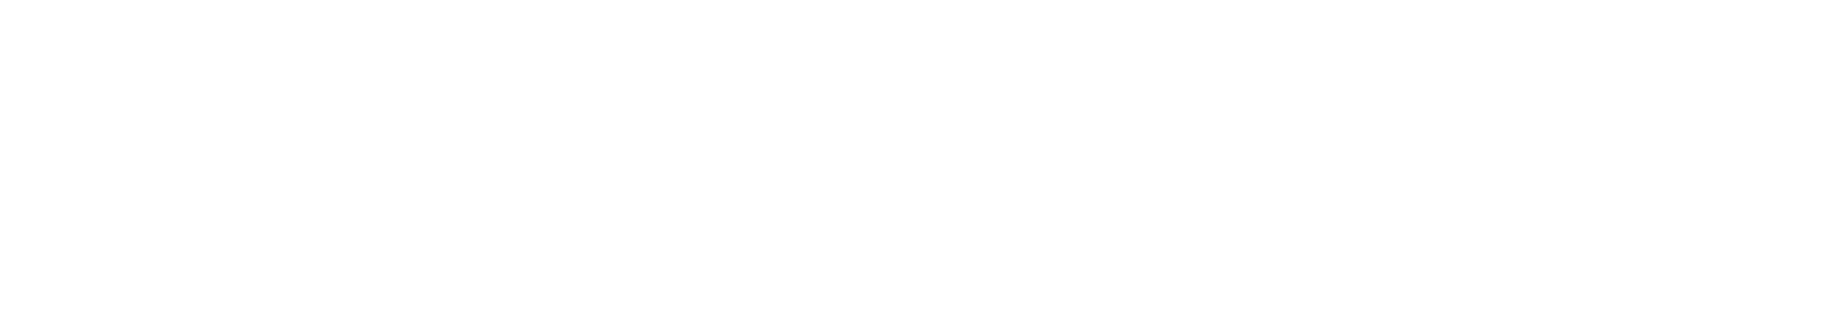 Private Events Videographer - Filmwoo Cinematic Stories